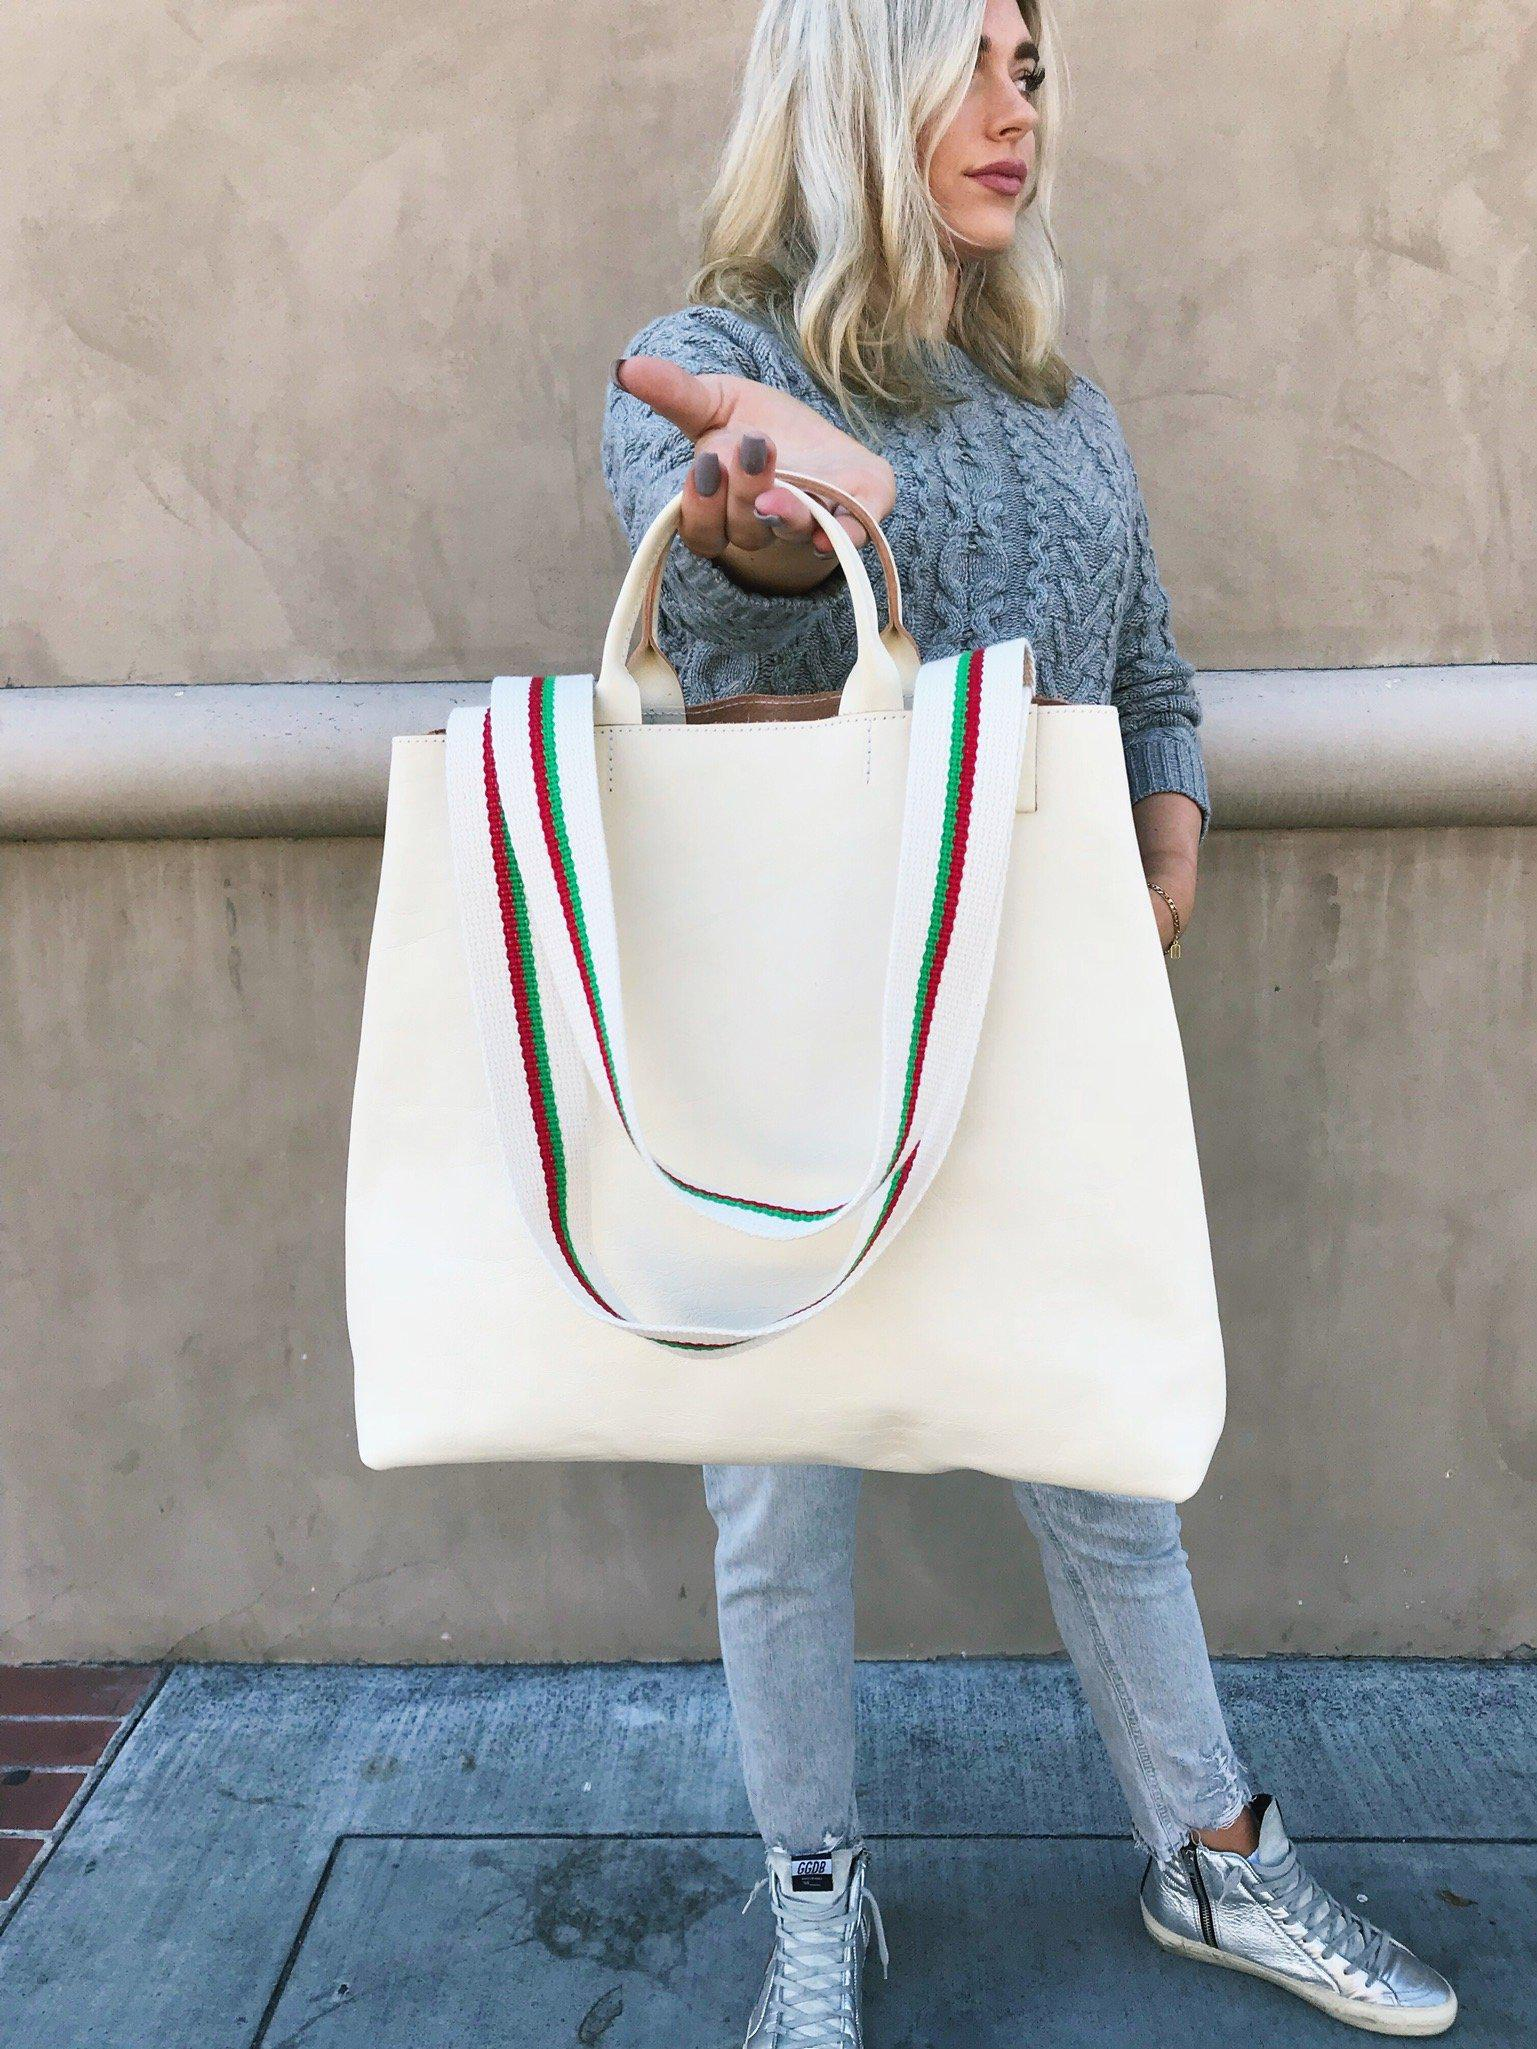 af27479719ff0 Lyst - Clare V. Rustic Le Big Sac in White